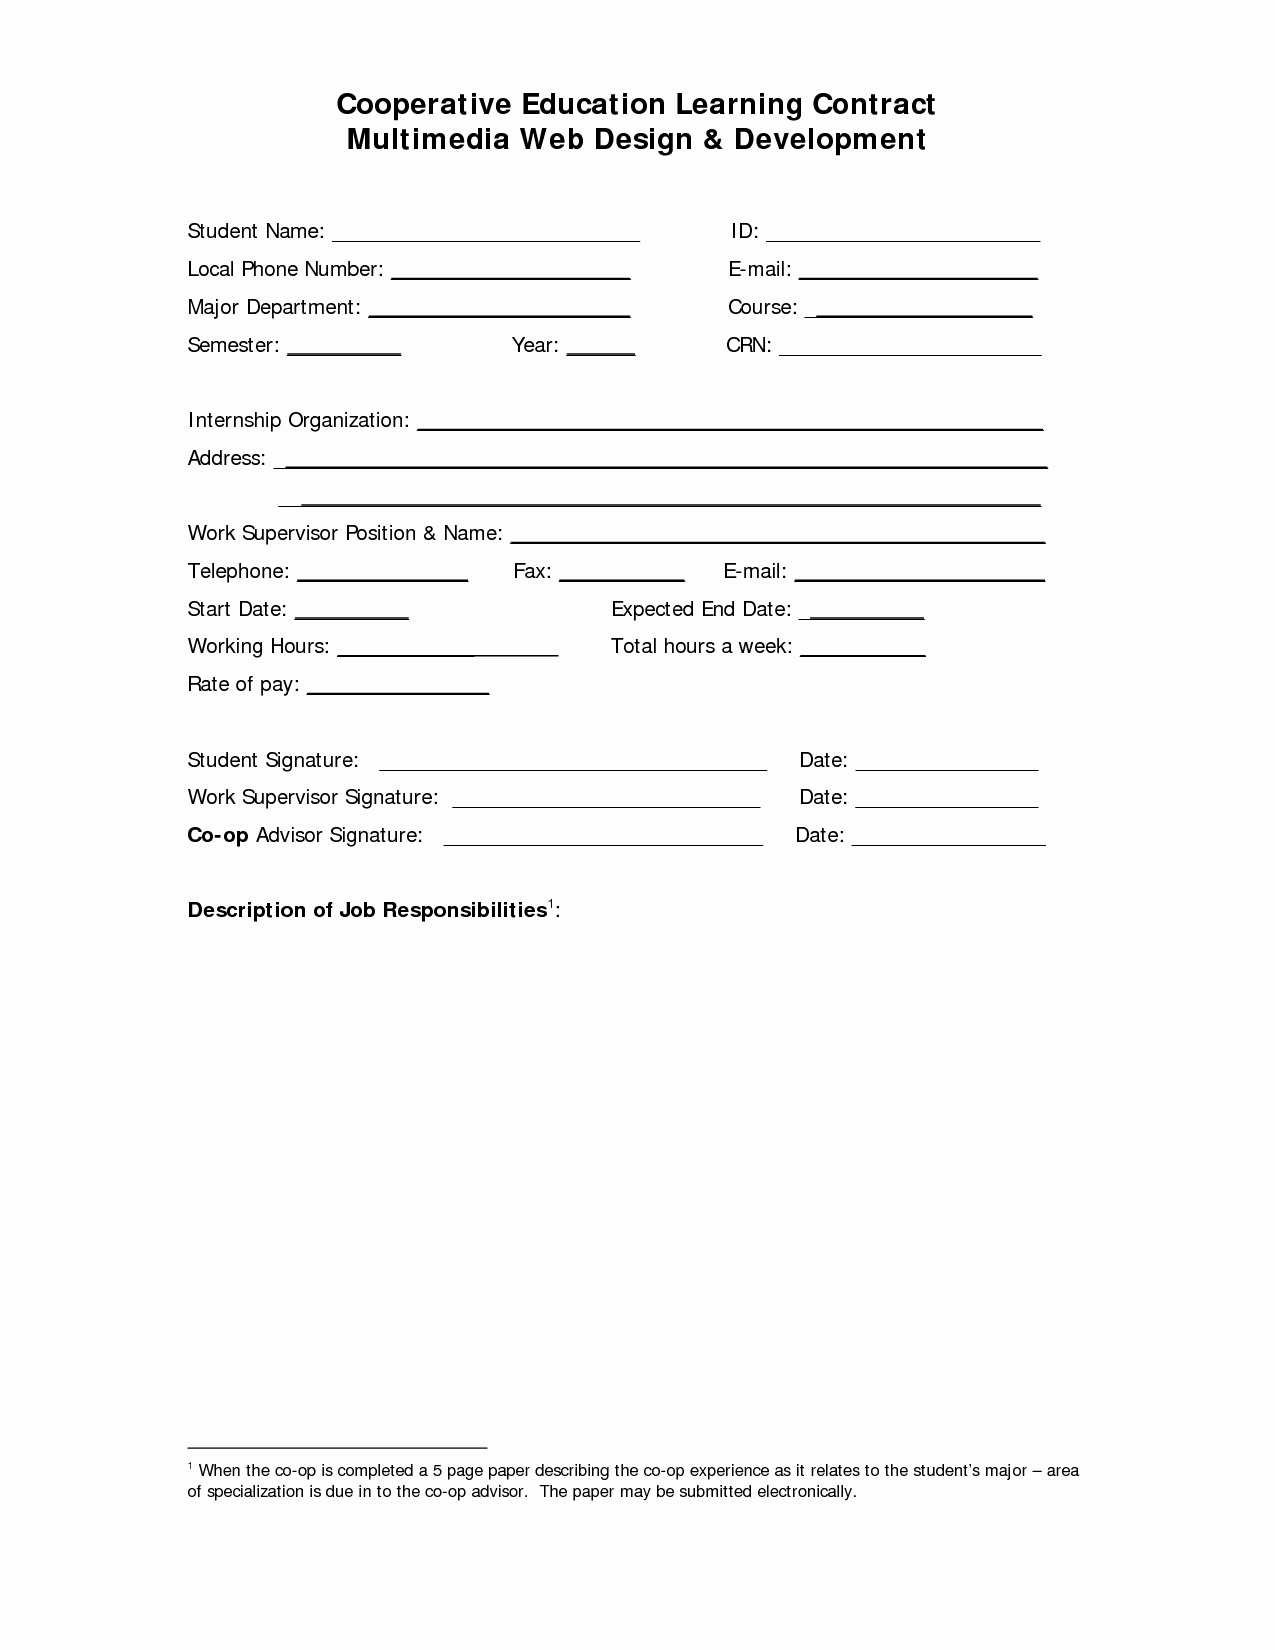 Contract Signature Page Template Fresh Example A Signature Page to Pin On Pinterest